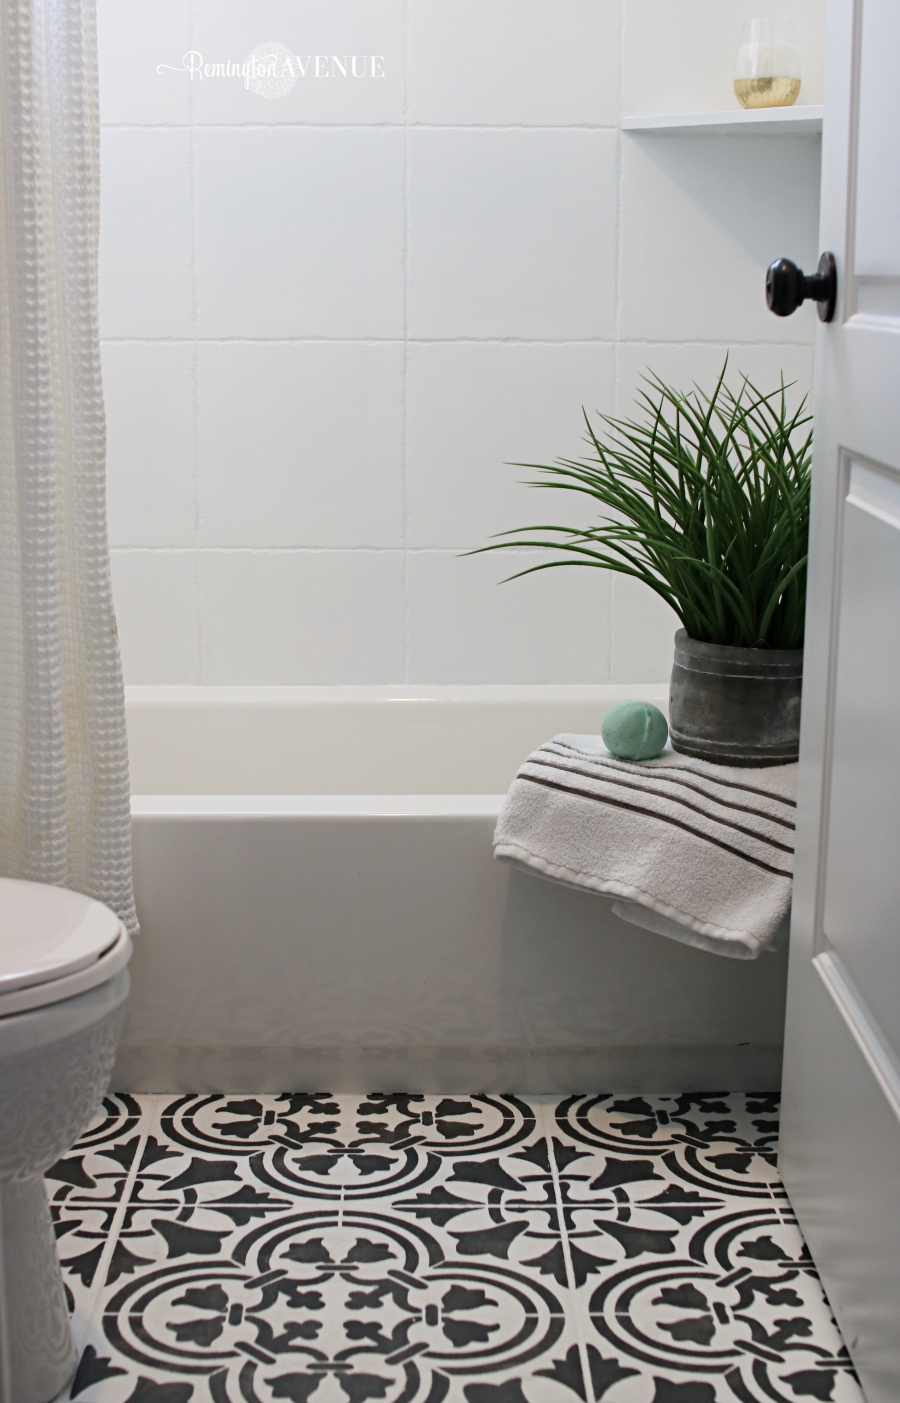 Bathroom Paints How To Paint Shower Tile Remington Avenue